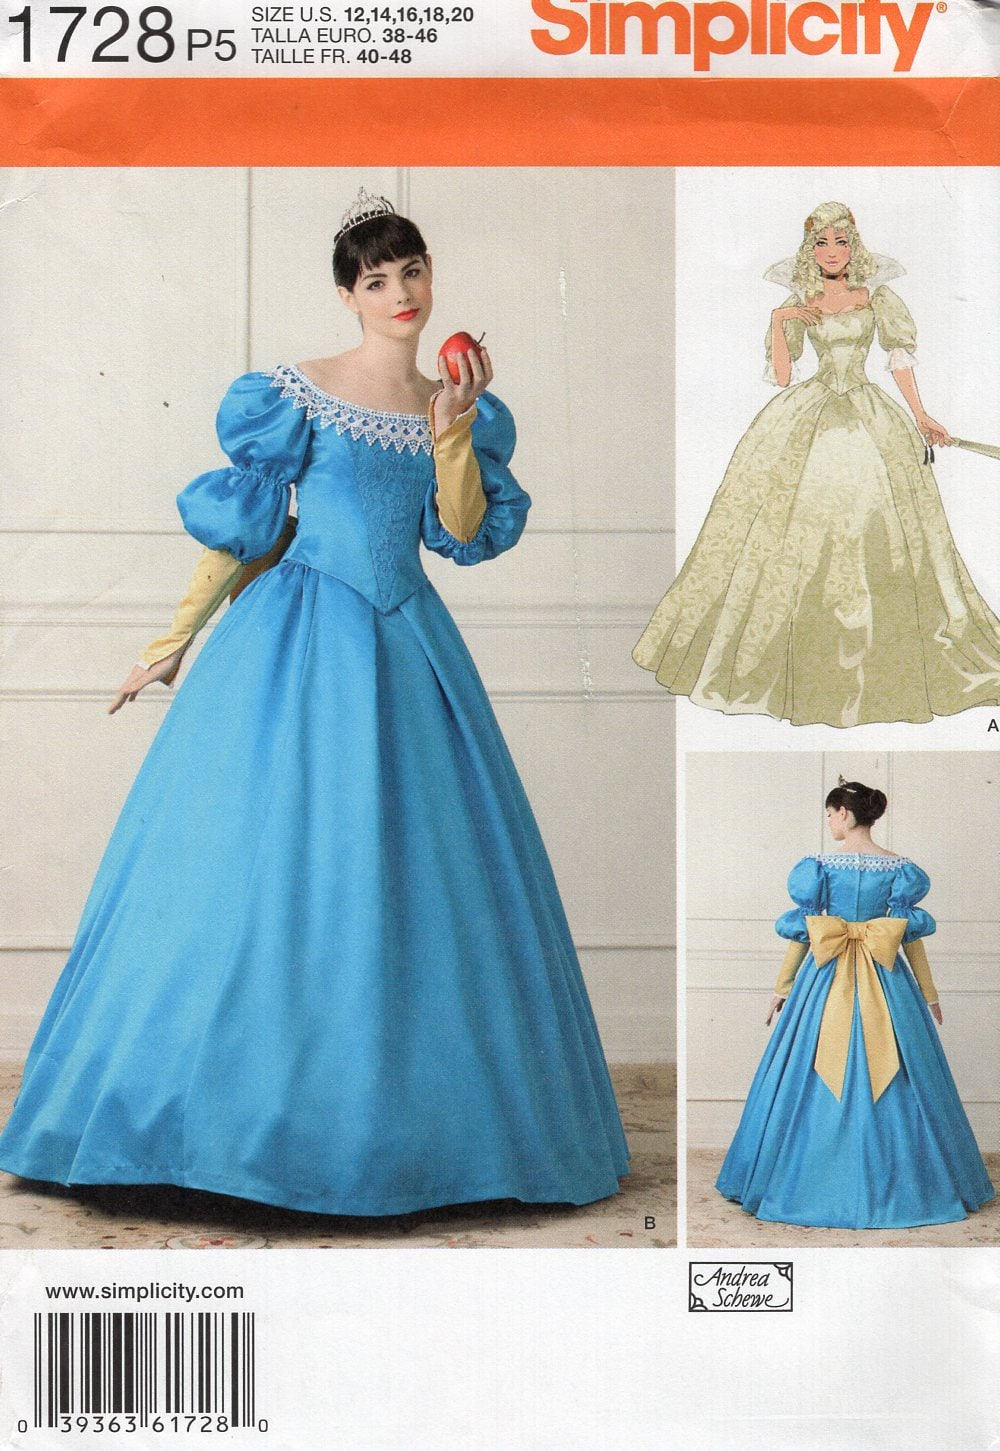 FREE US SHIP Sewing Pattern Simplicity 1728 Misses Costume Gown ...